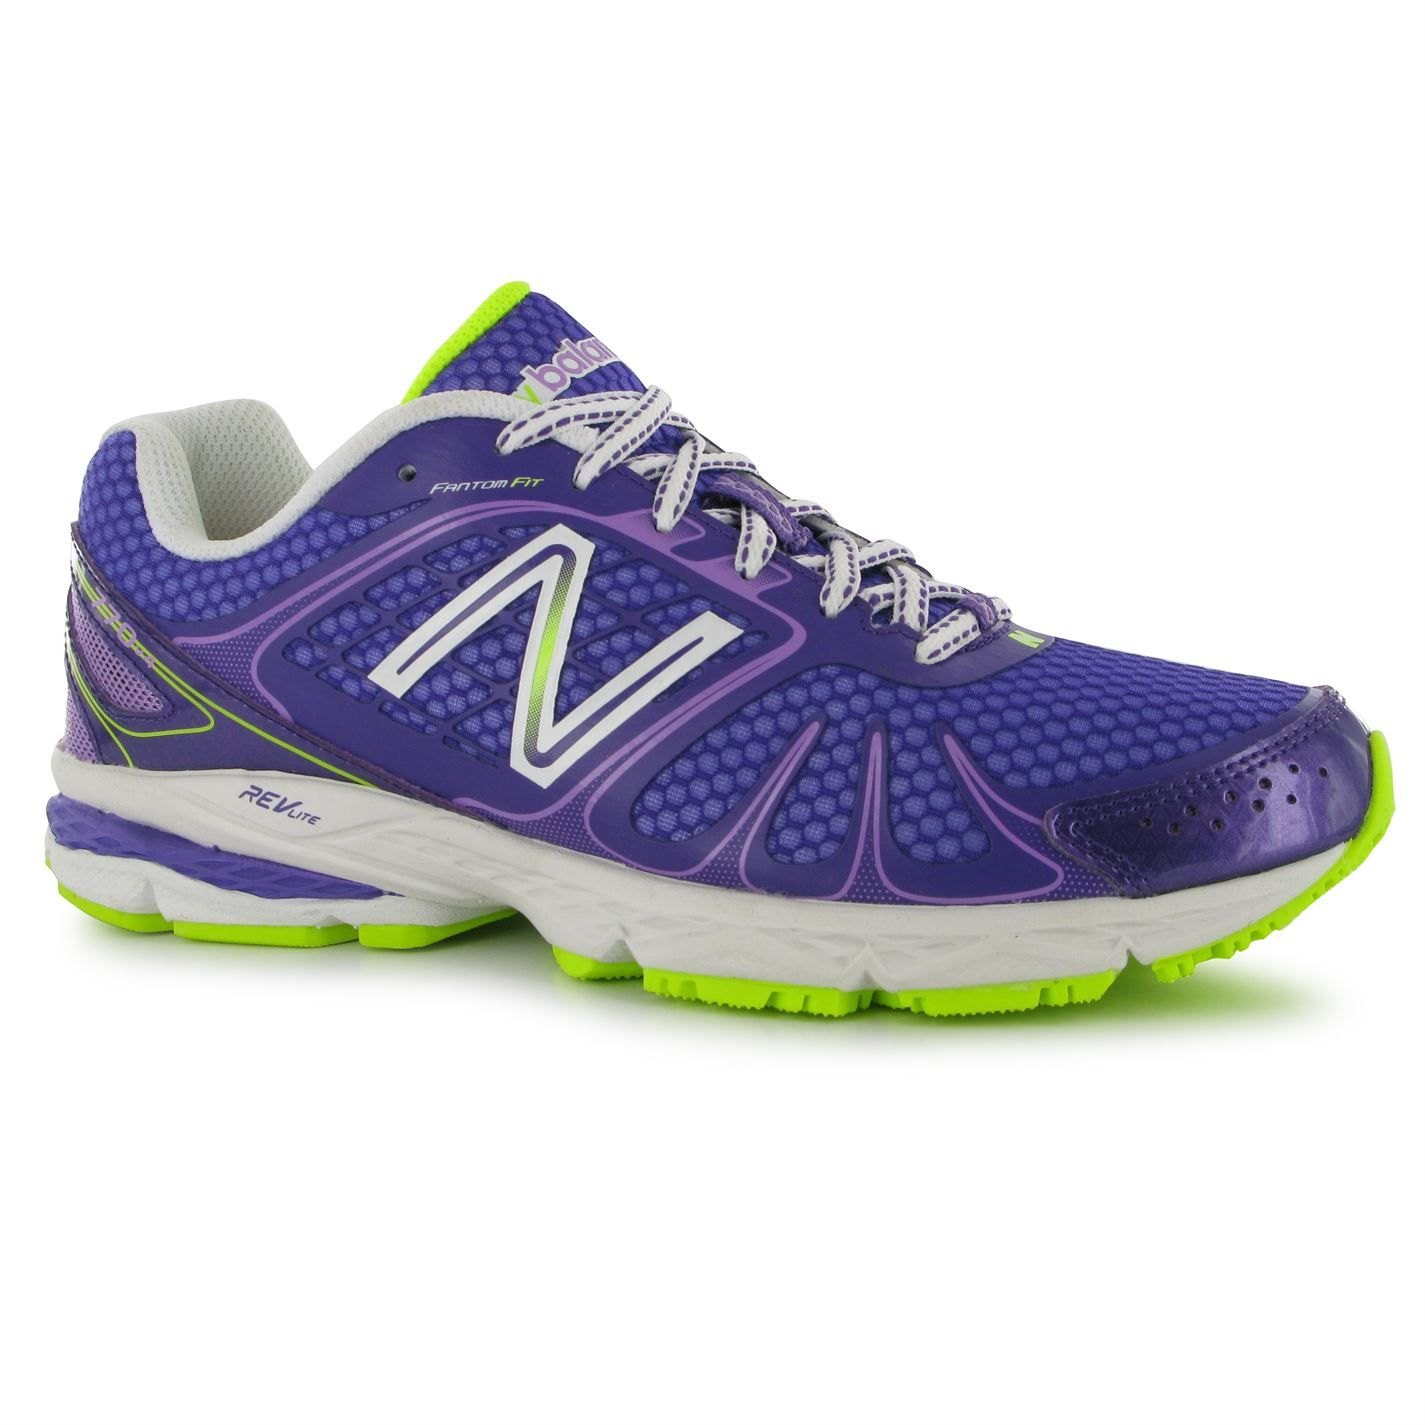 New Balance 770v4 Ladies Running Shoes